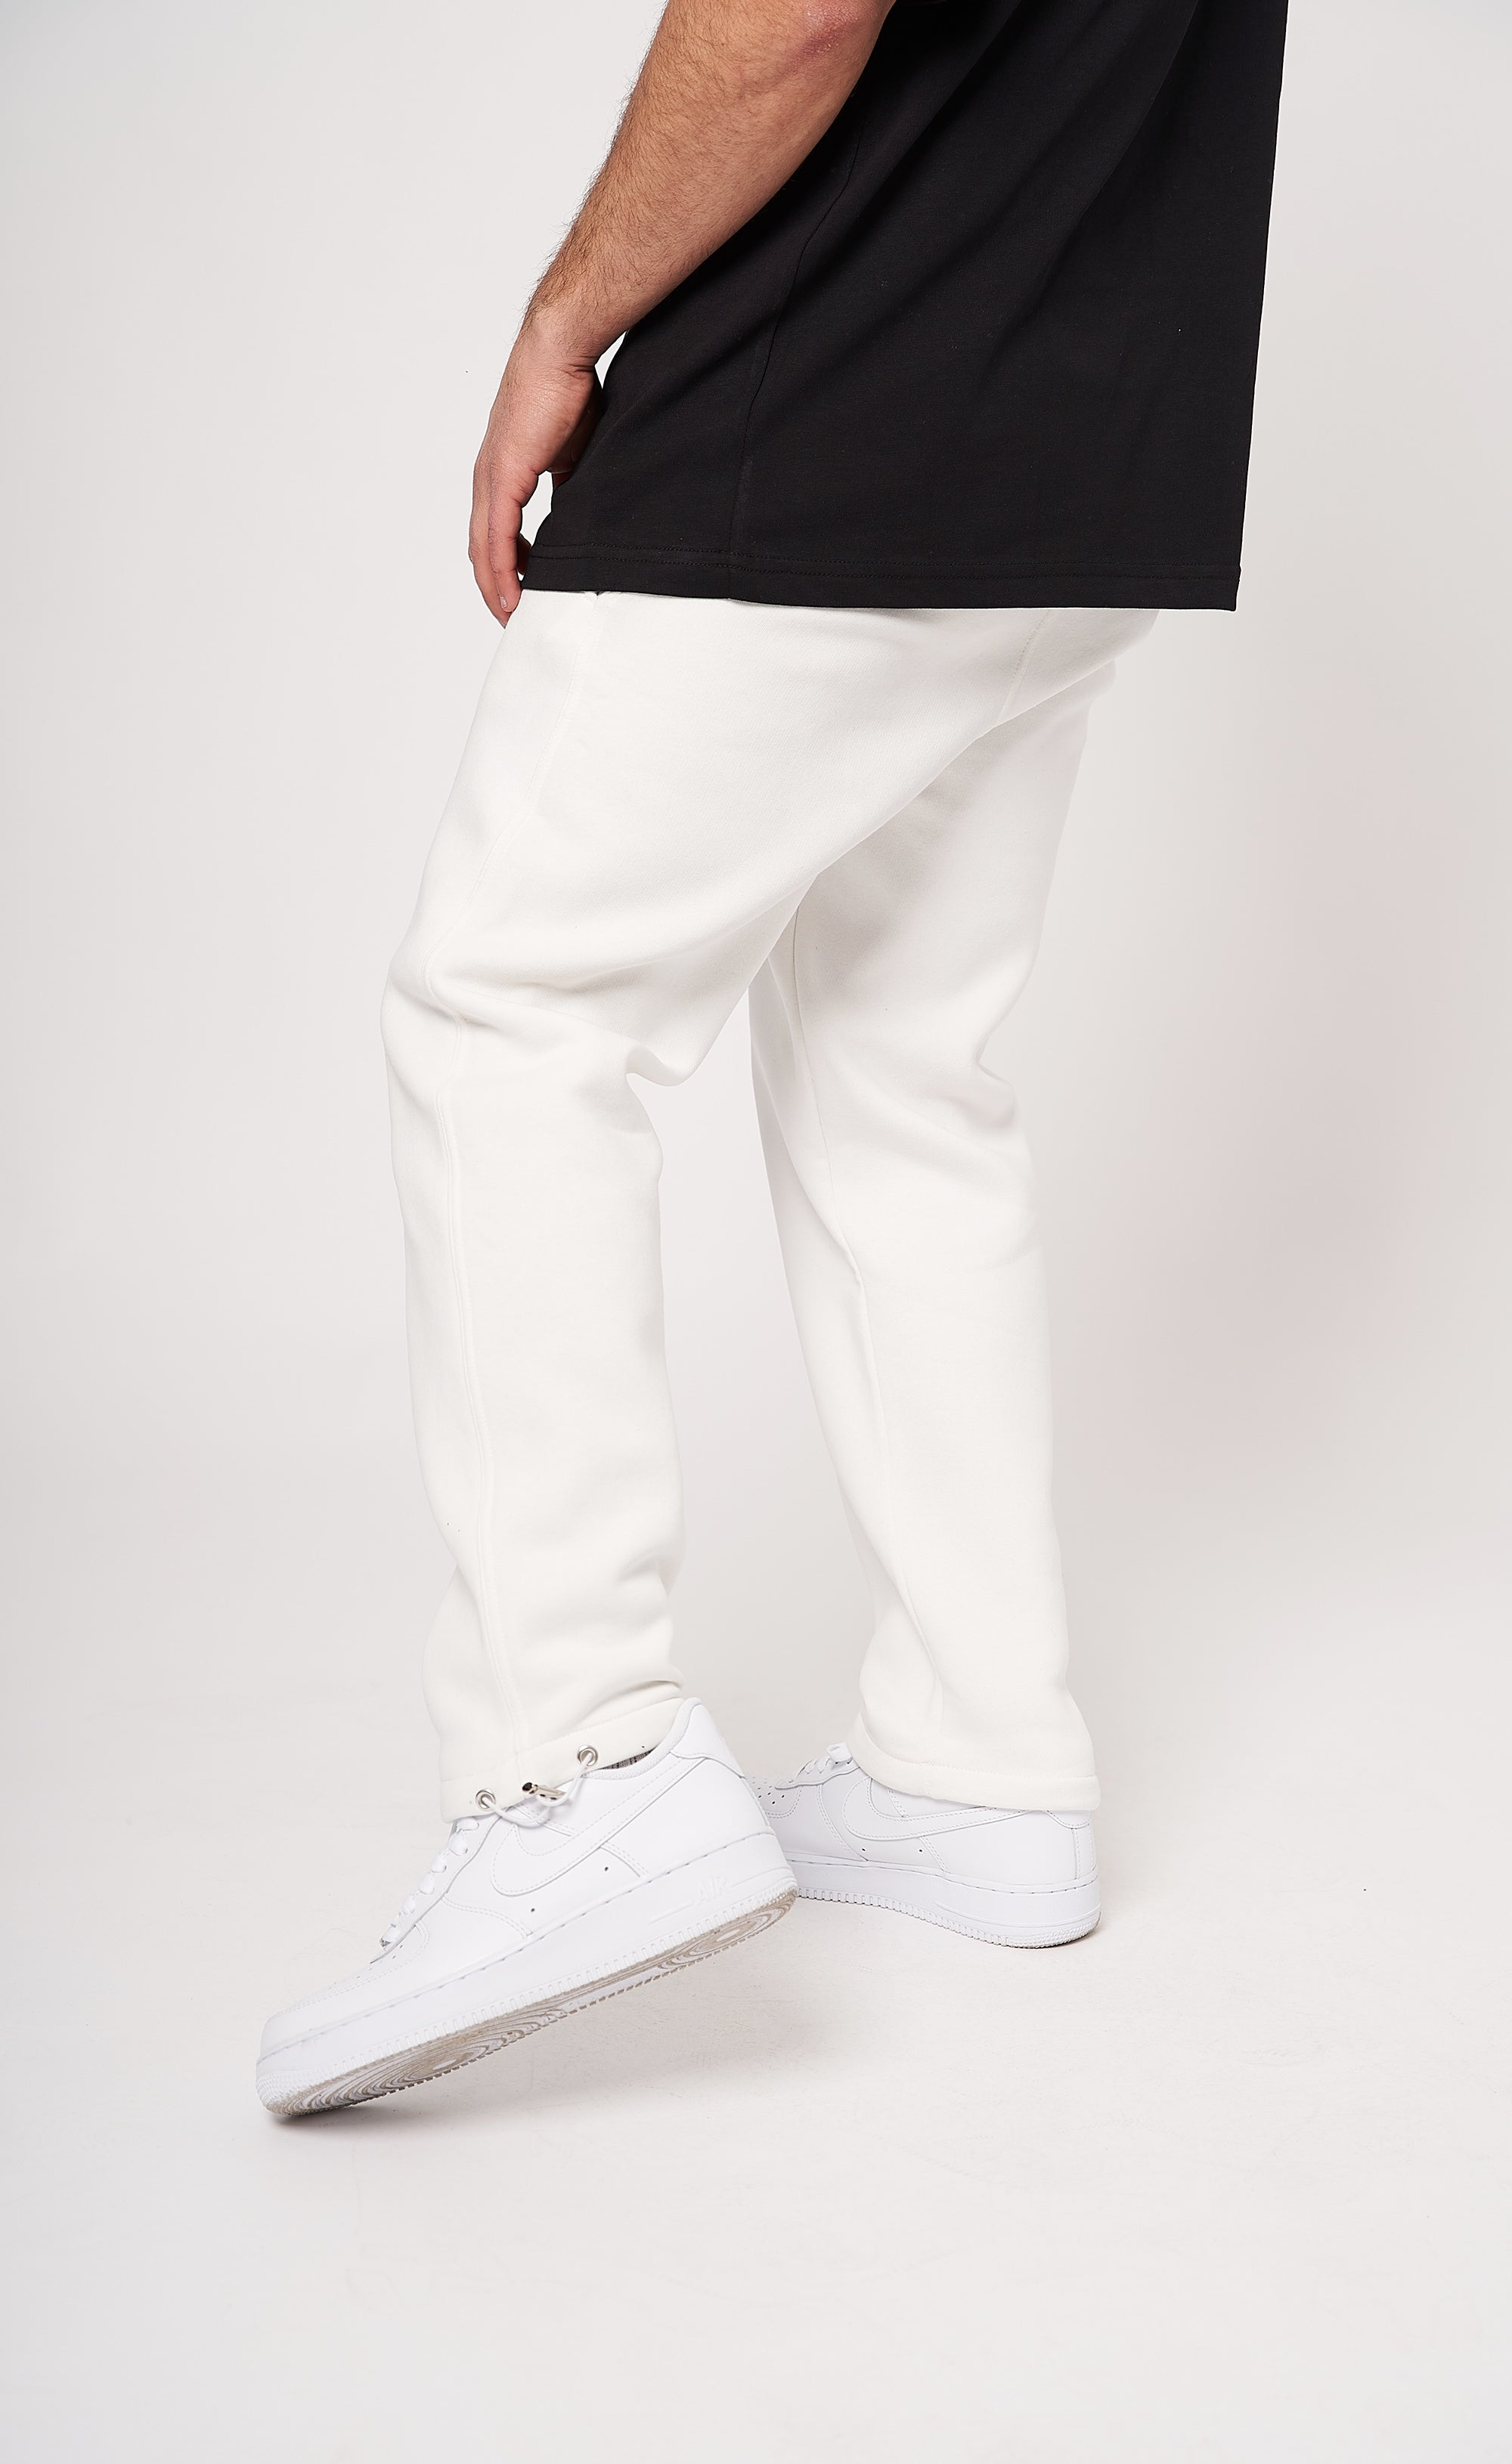 TRACKPANTS - OFF WHITE